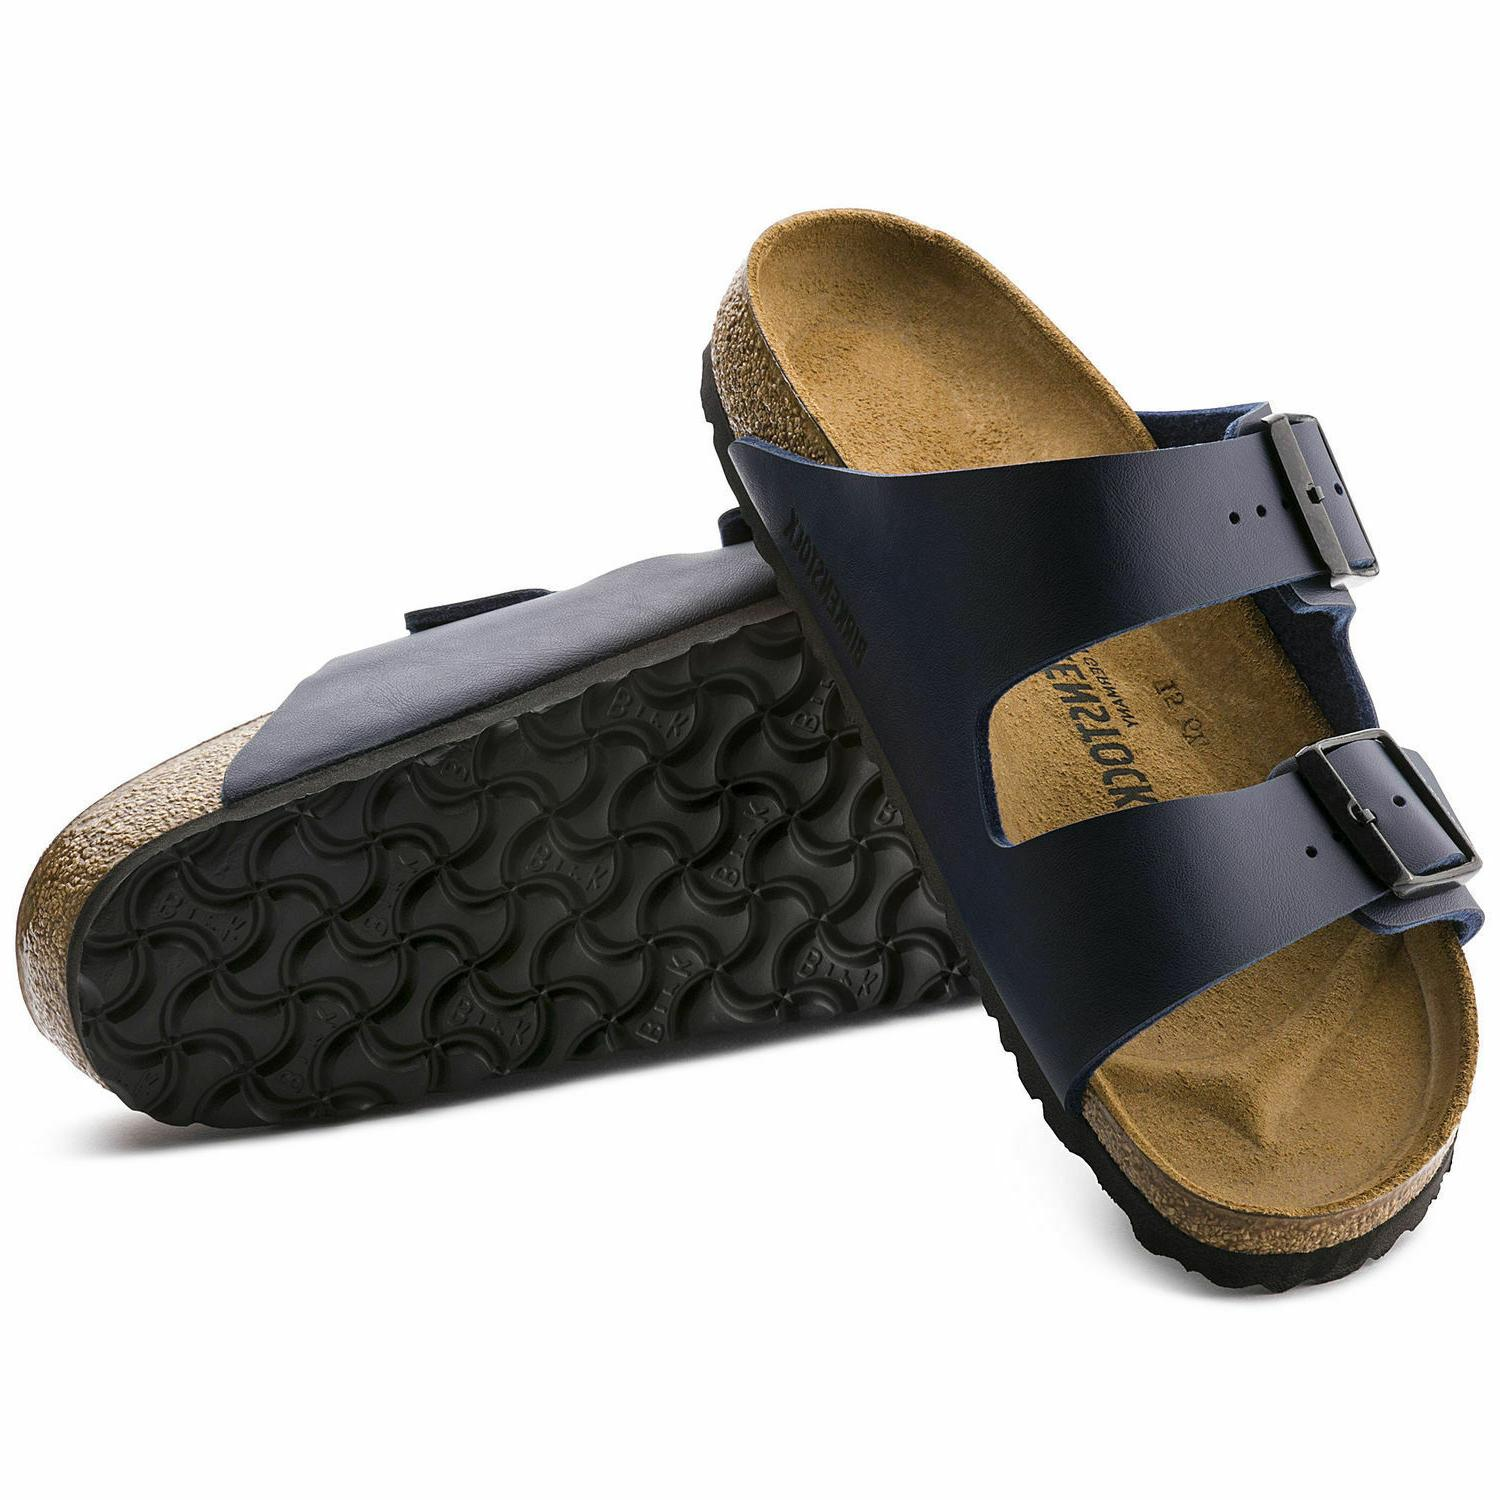 arizona birko flor blue sandals size eu